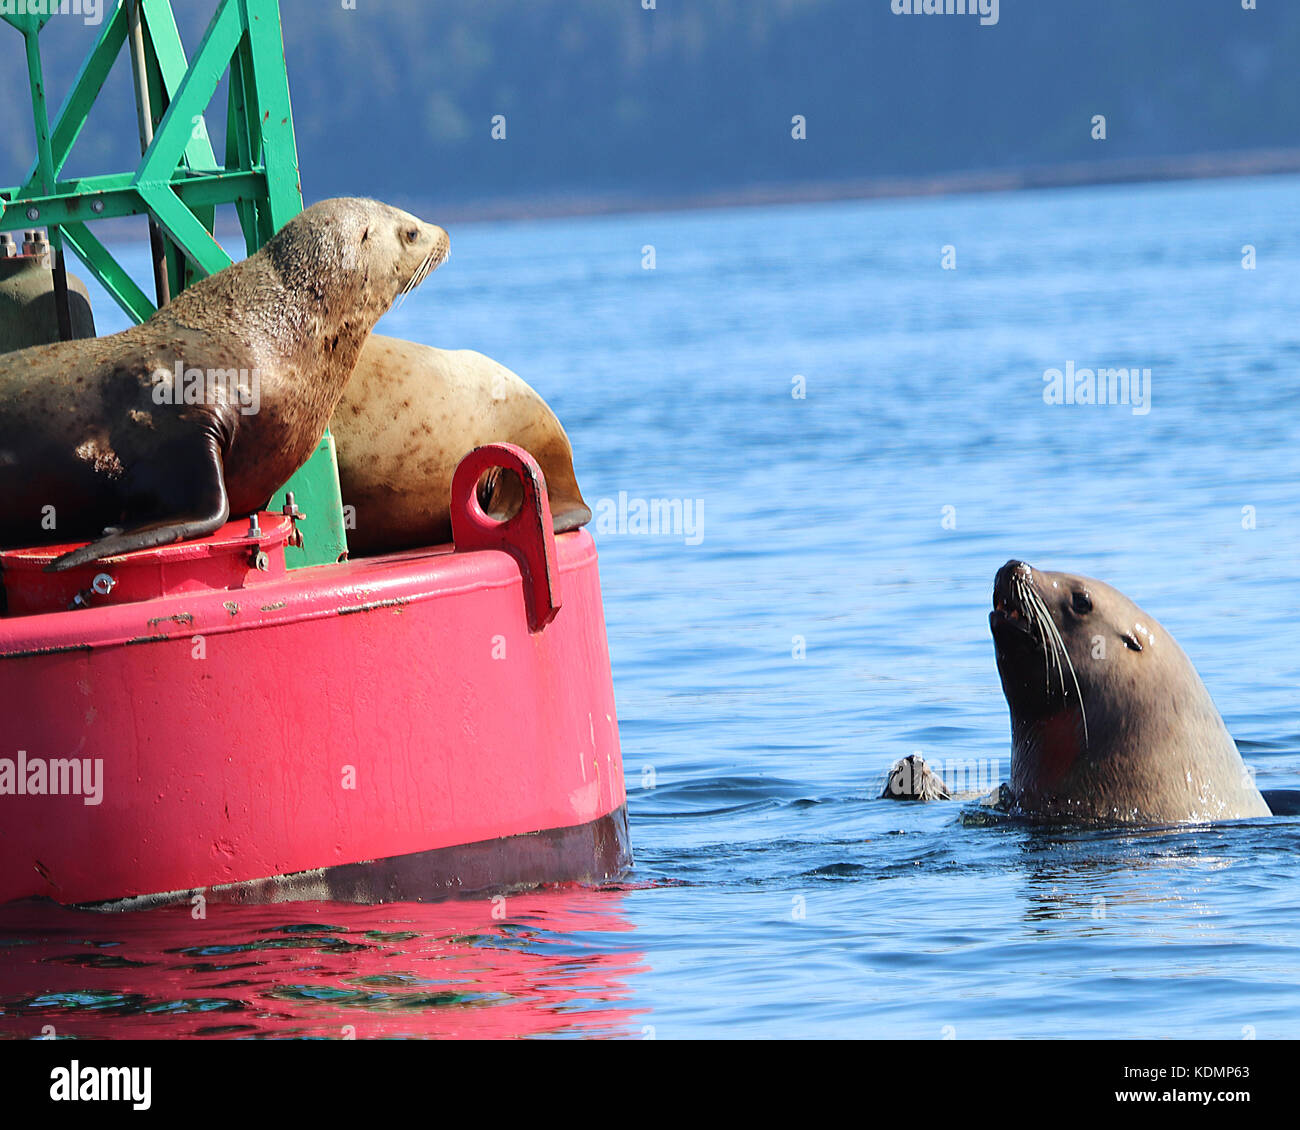 Adorable Sea Lion wanting to get up onto a buoy that is already full of resting Sea Lions - Stock Image